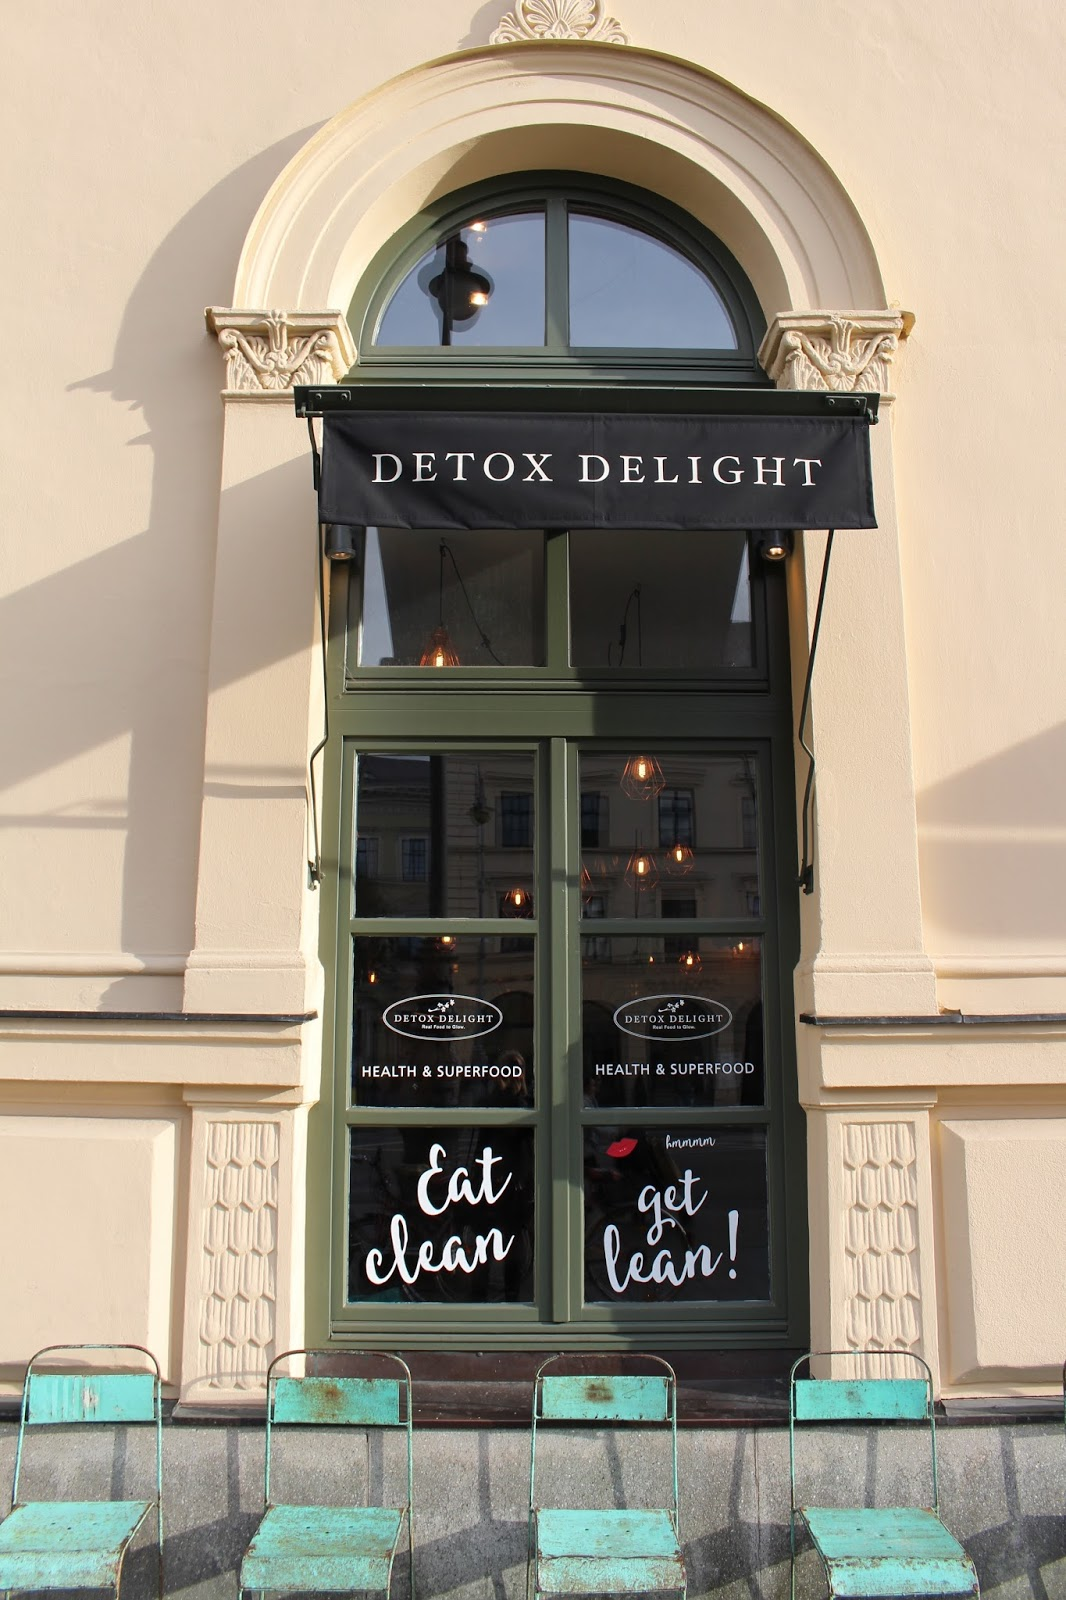 Munich - Detox Delight